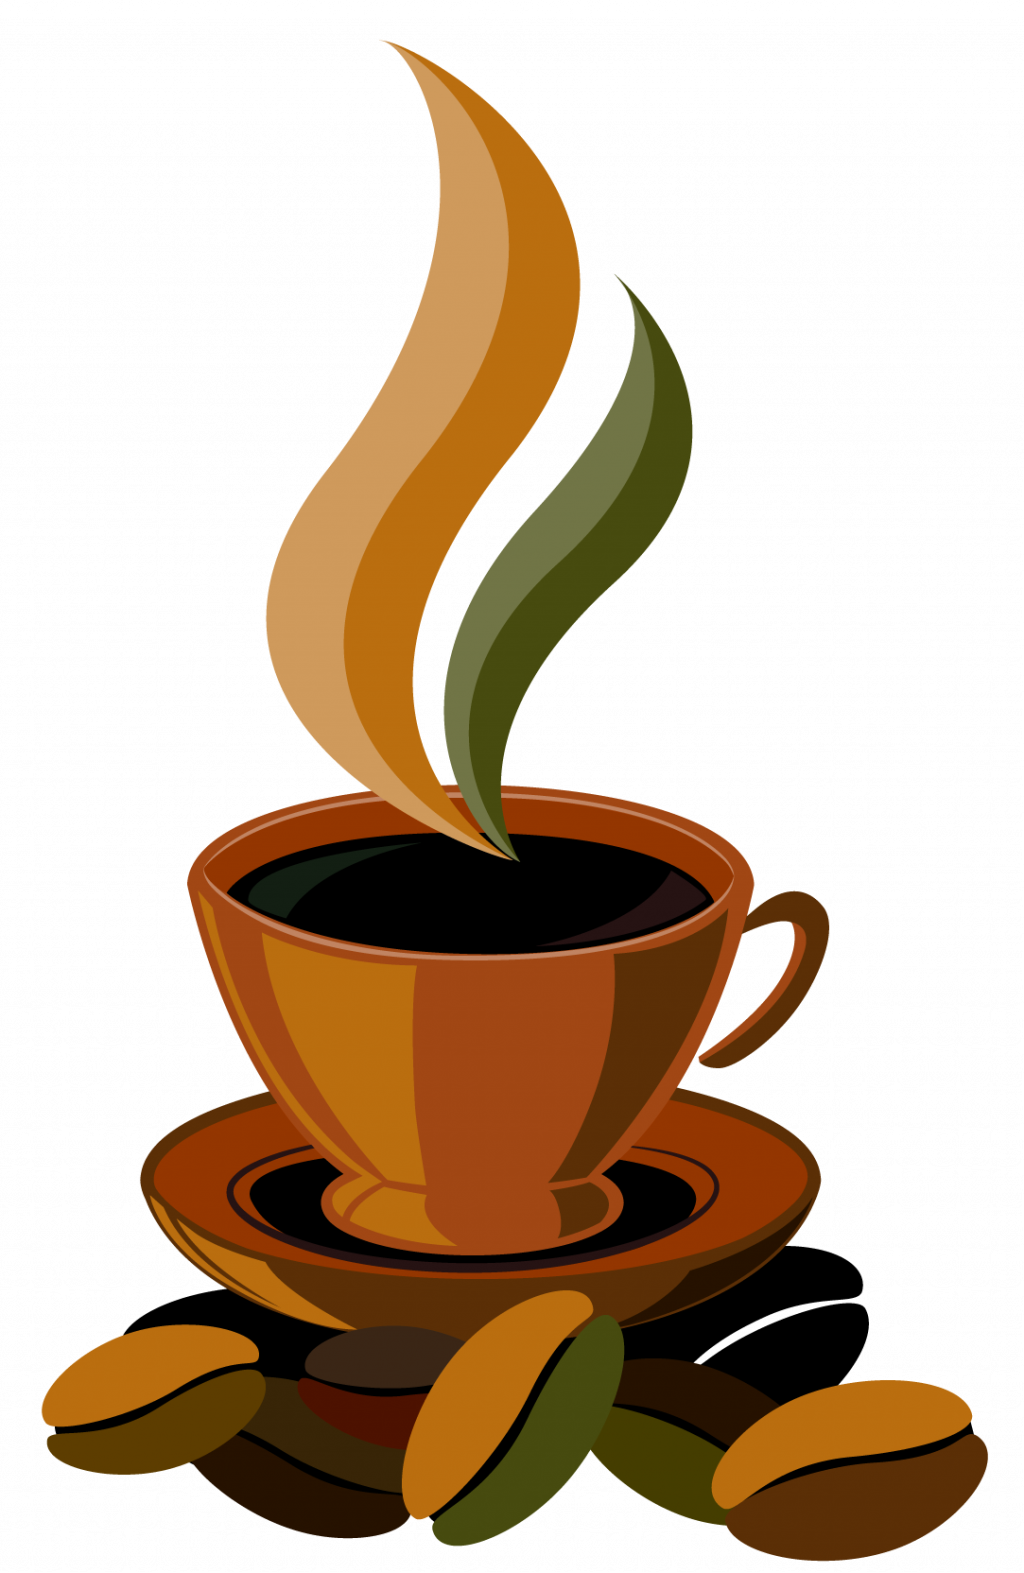 Coffee clipart woman. Free drinker cup